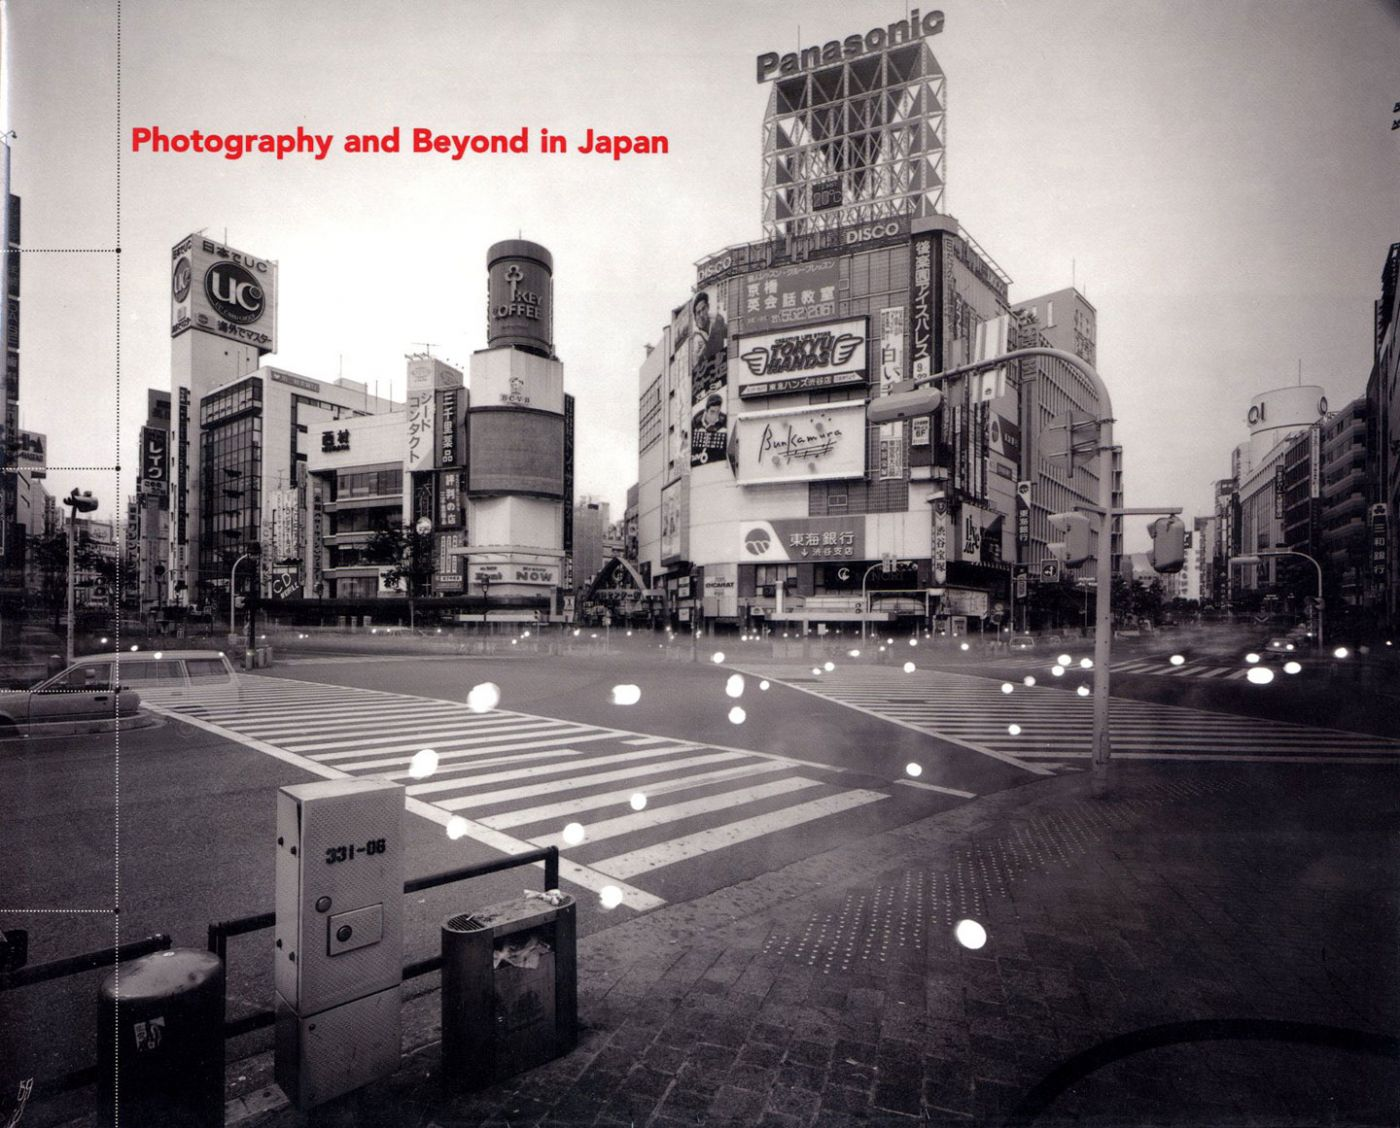 Photography and Beyond in Japan: Space, Time and Memory